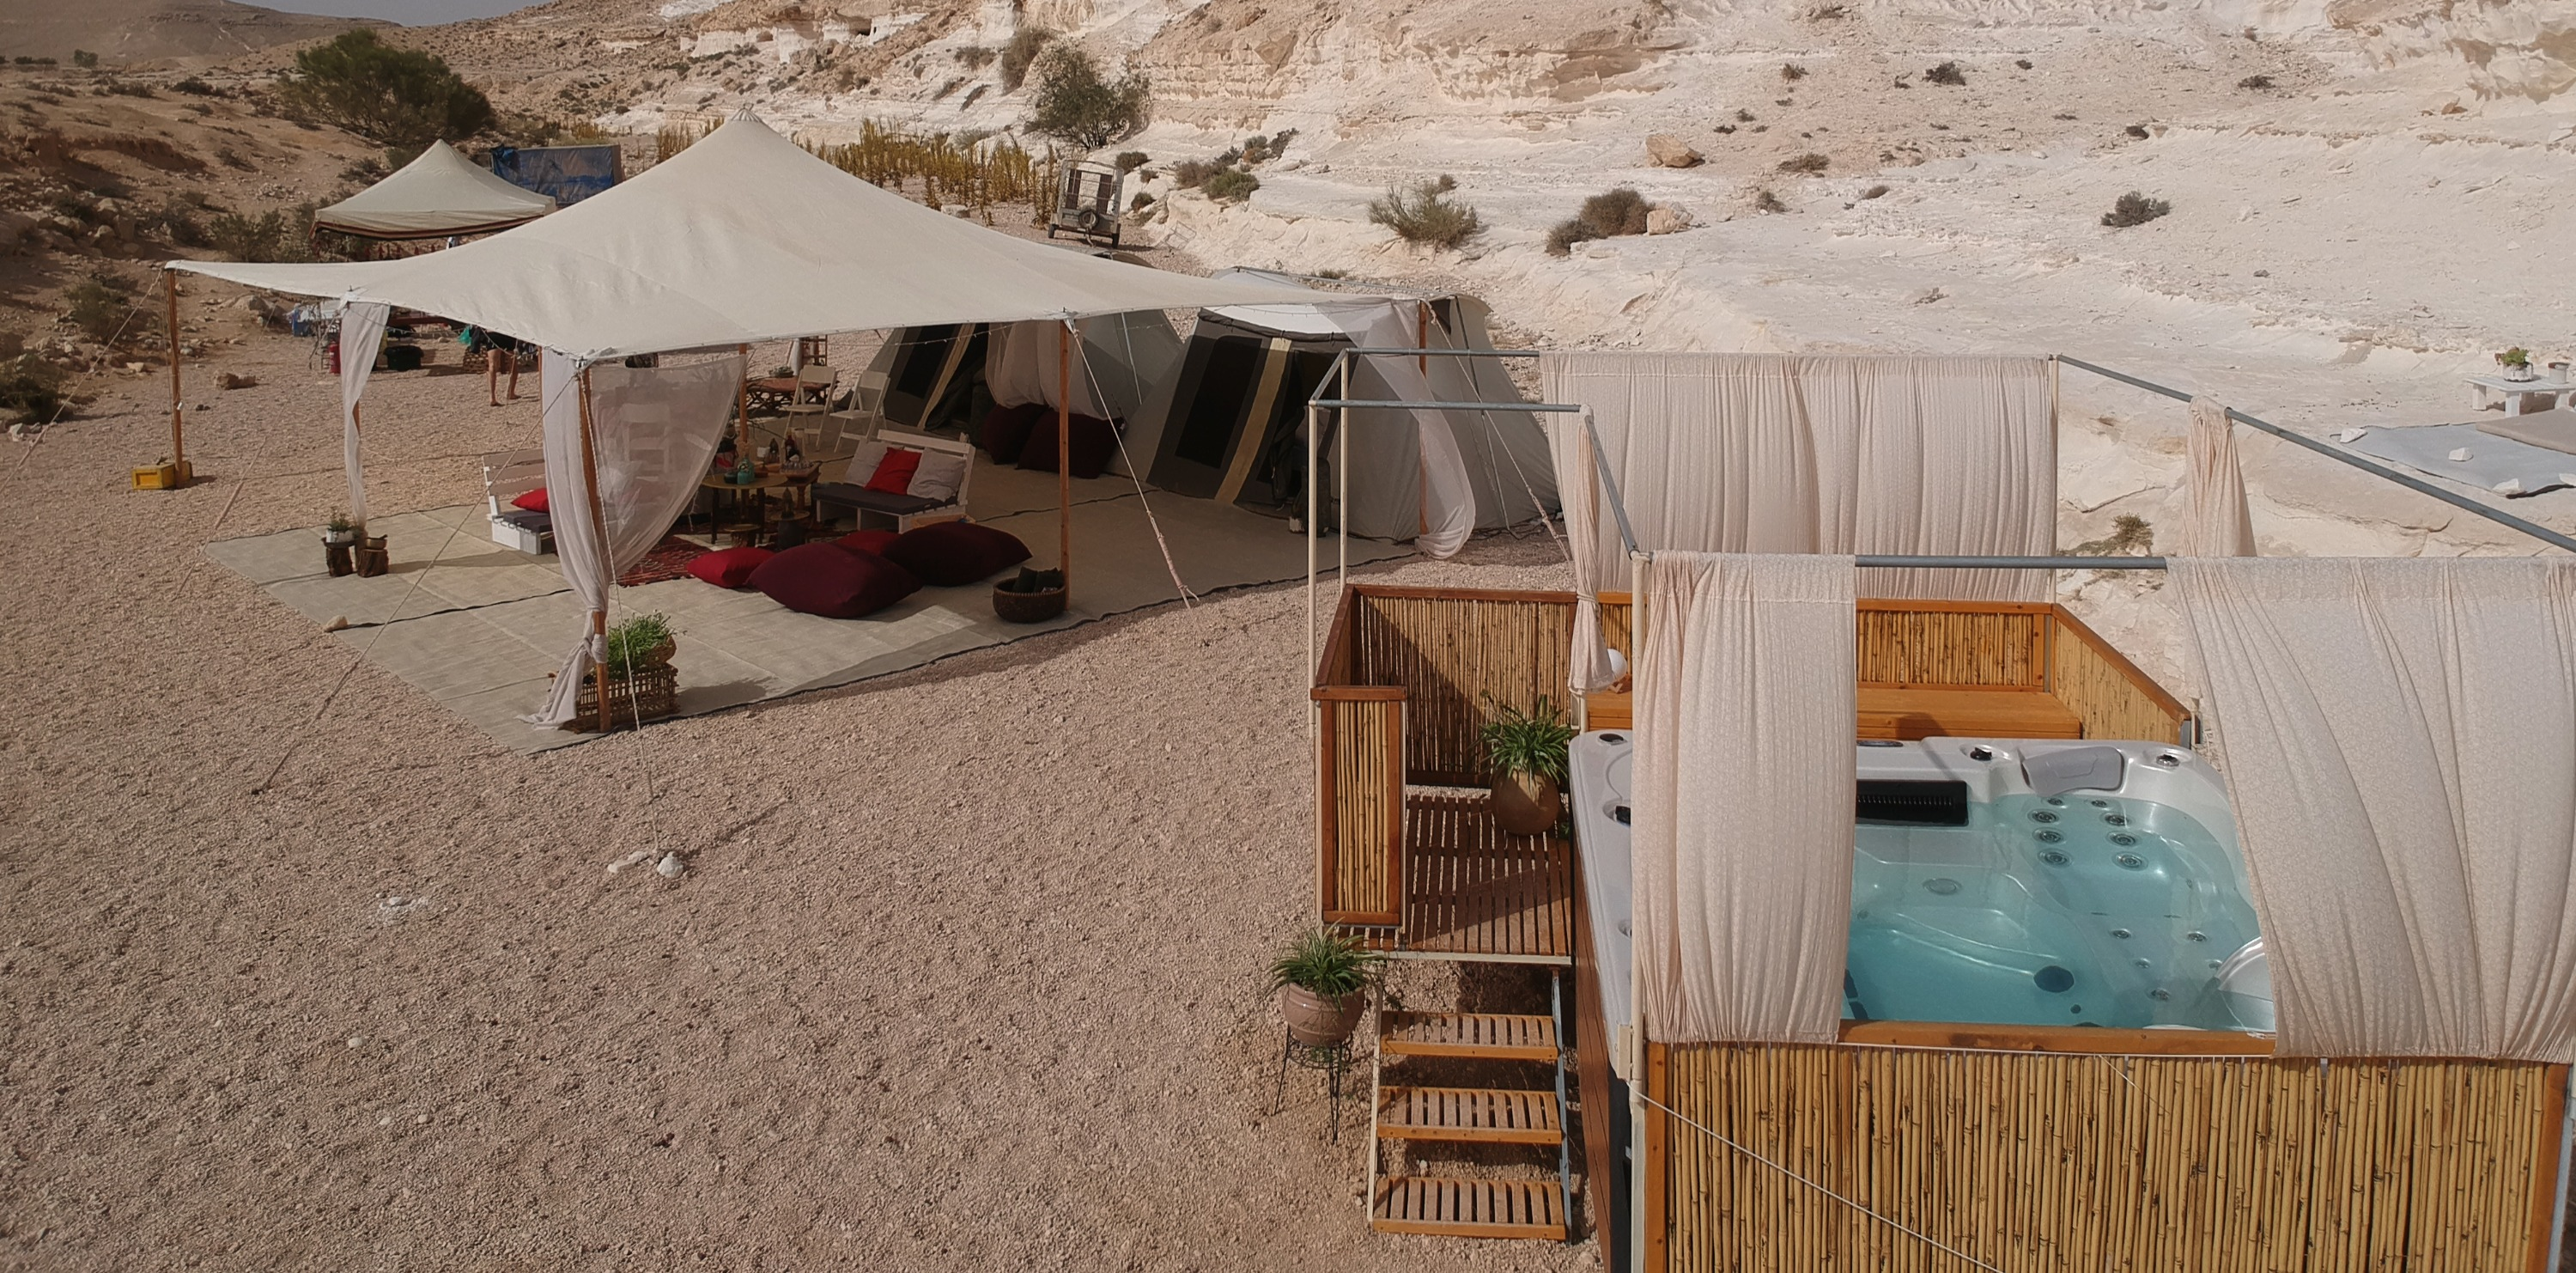 Desert luxury camping in Israel